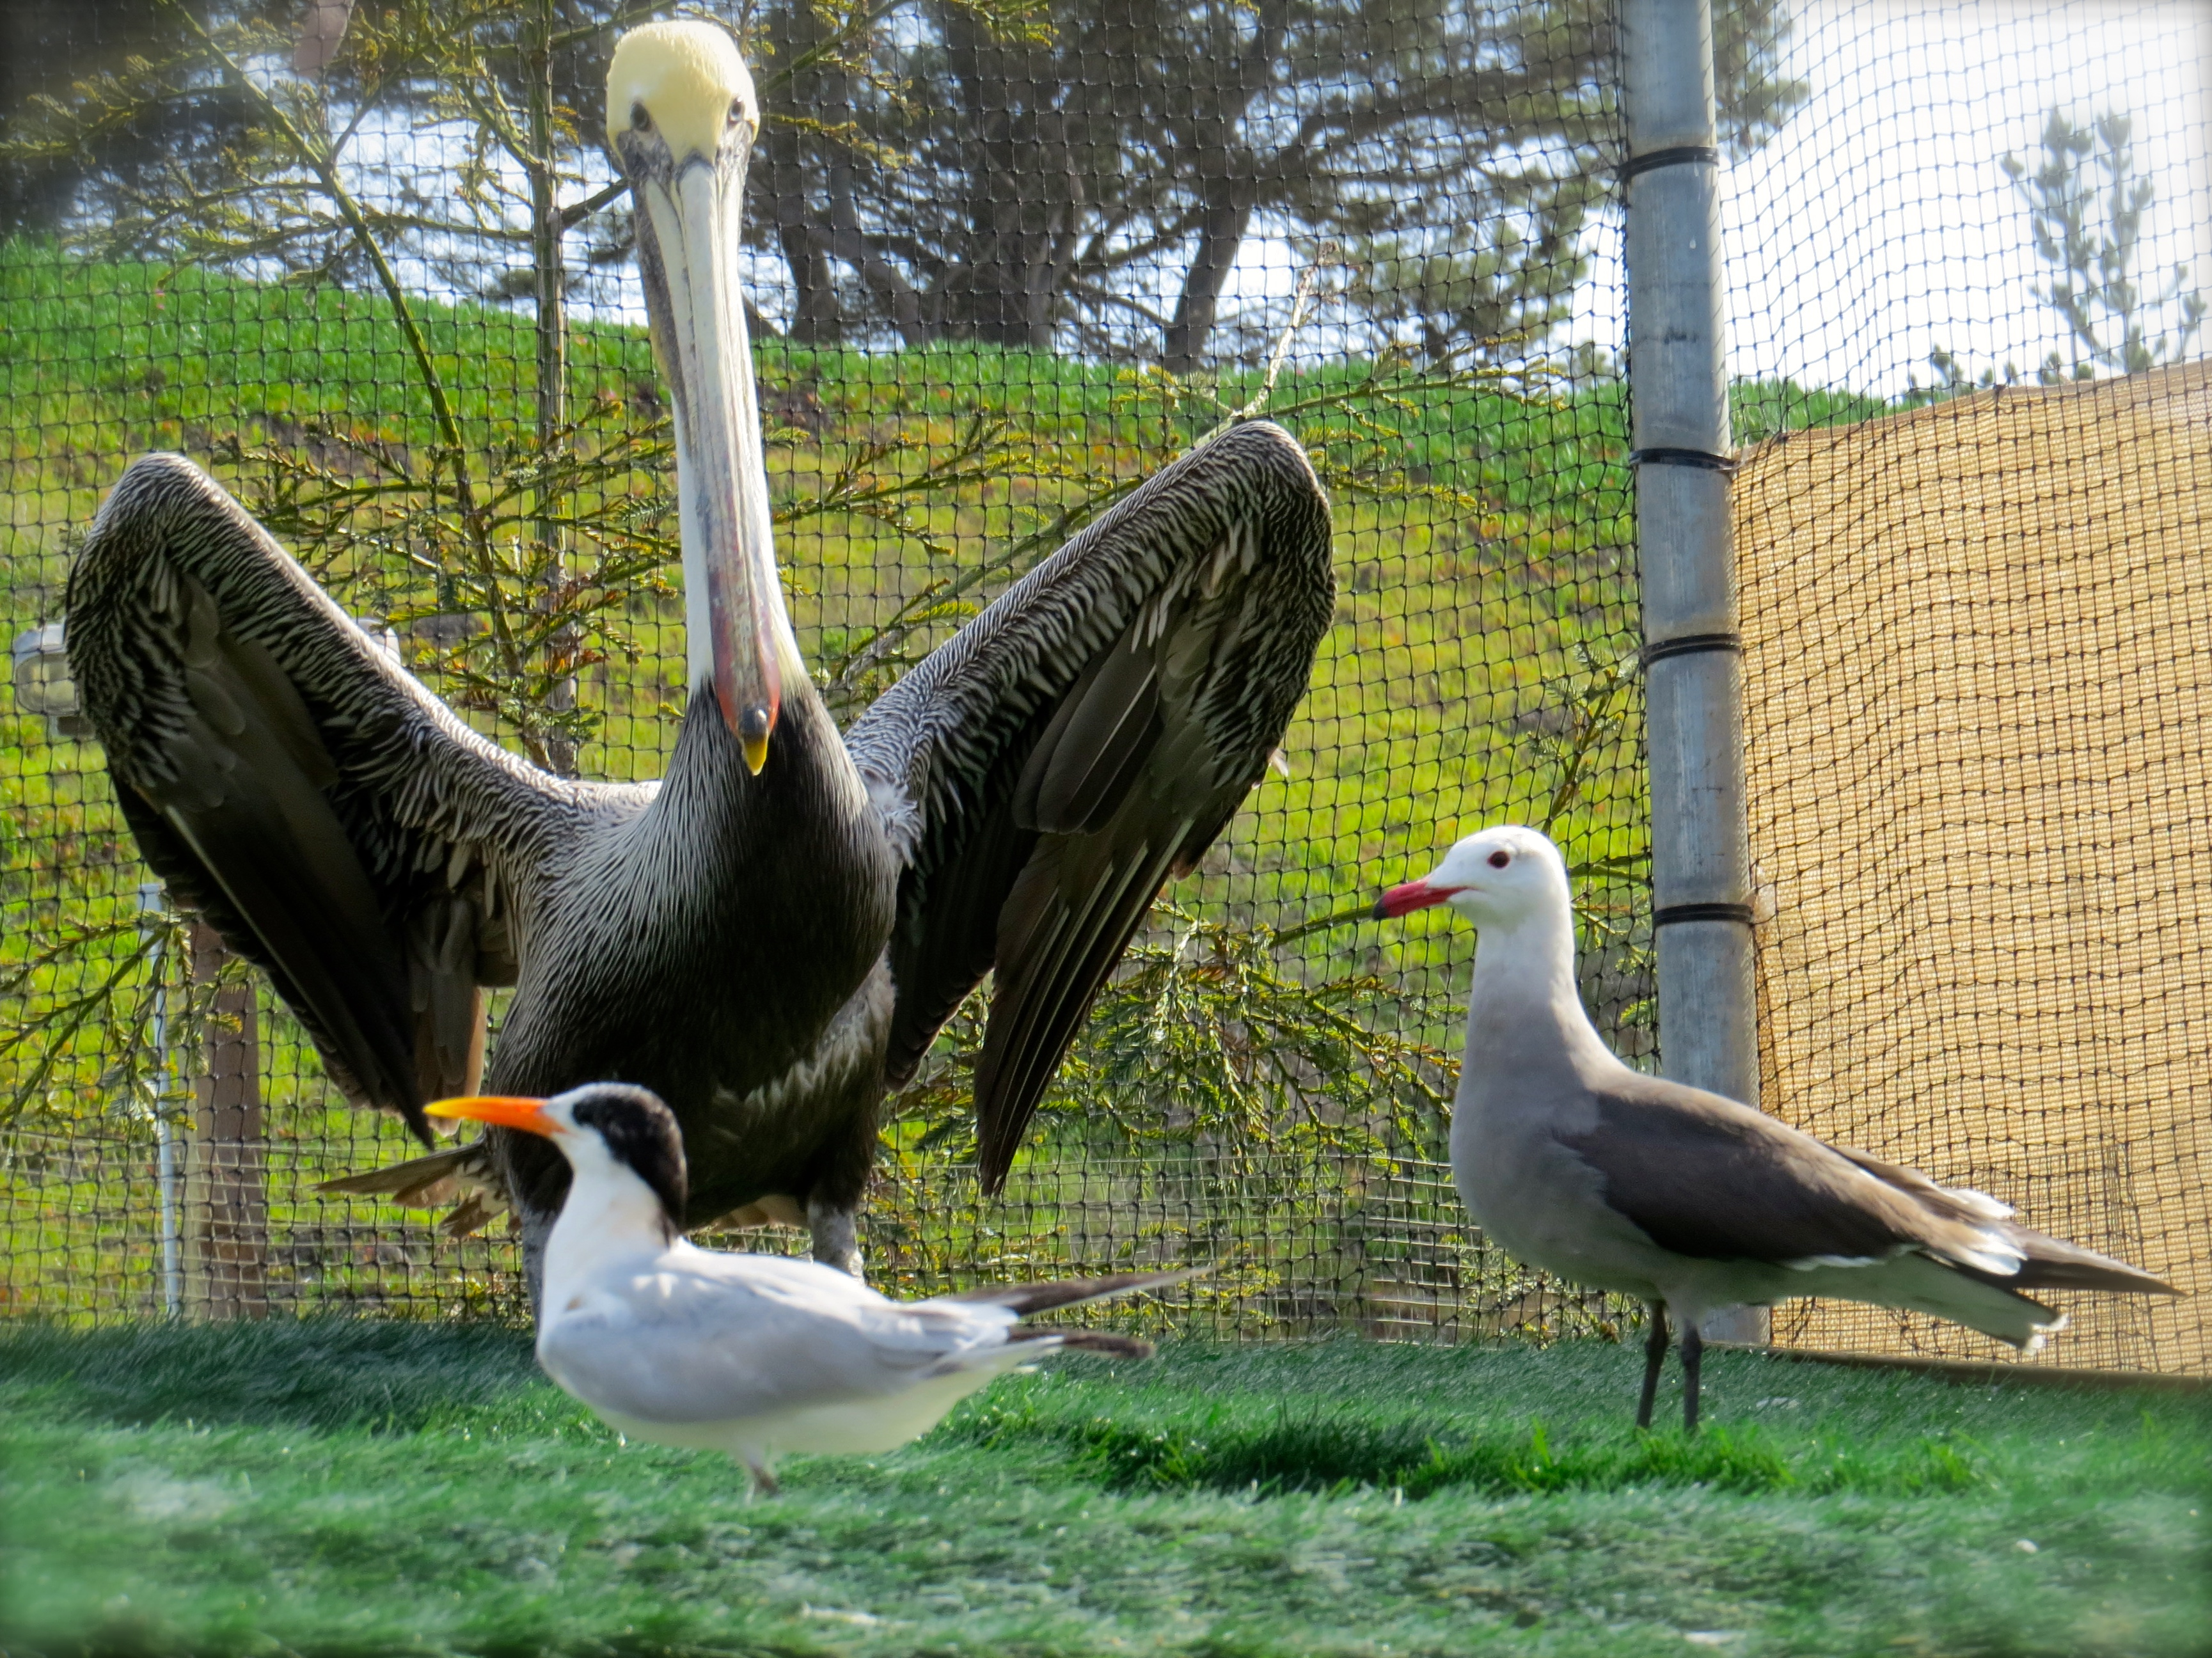 Last week I visited the Pacific Wildlife Center in Morro Bay, a site opened in 2007, all donor-financed and opened 365 days a year to all injured wildlife except  grown bears. Last year they cared for 2014 reptiles, mammals and birds. Recovering here are a northern California brown pelican, Heermann's Gull and a Royal Tern.